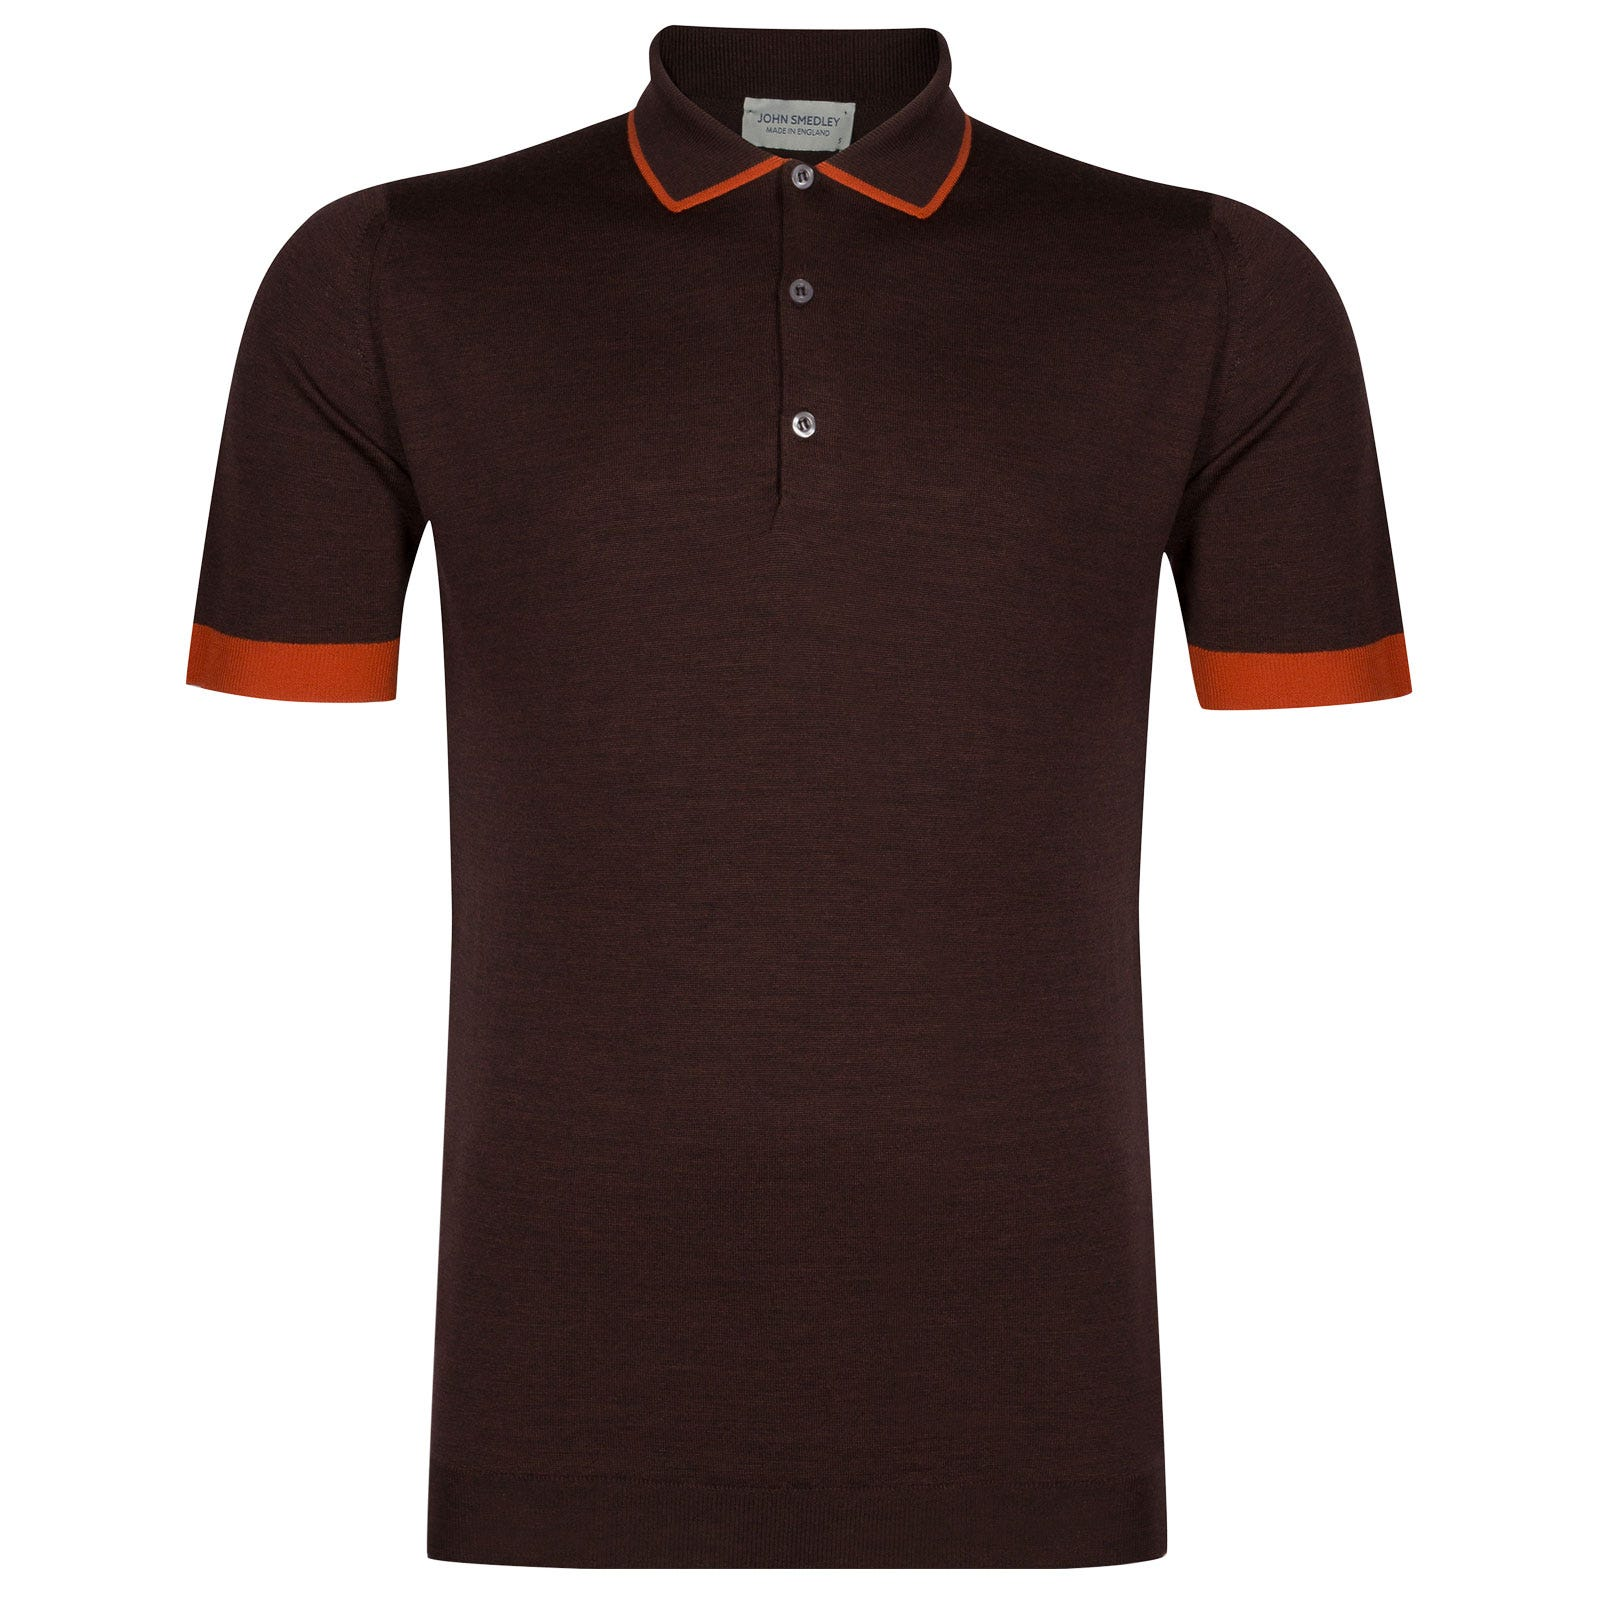 John Smedley nailsea Merino Wool Shirt in Chestnut/Flare Orange-L